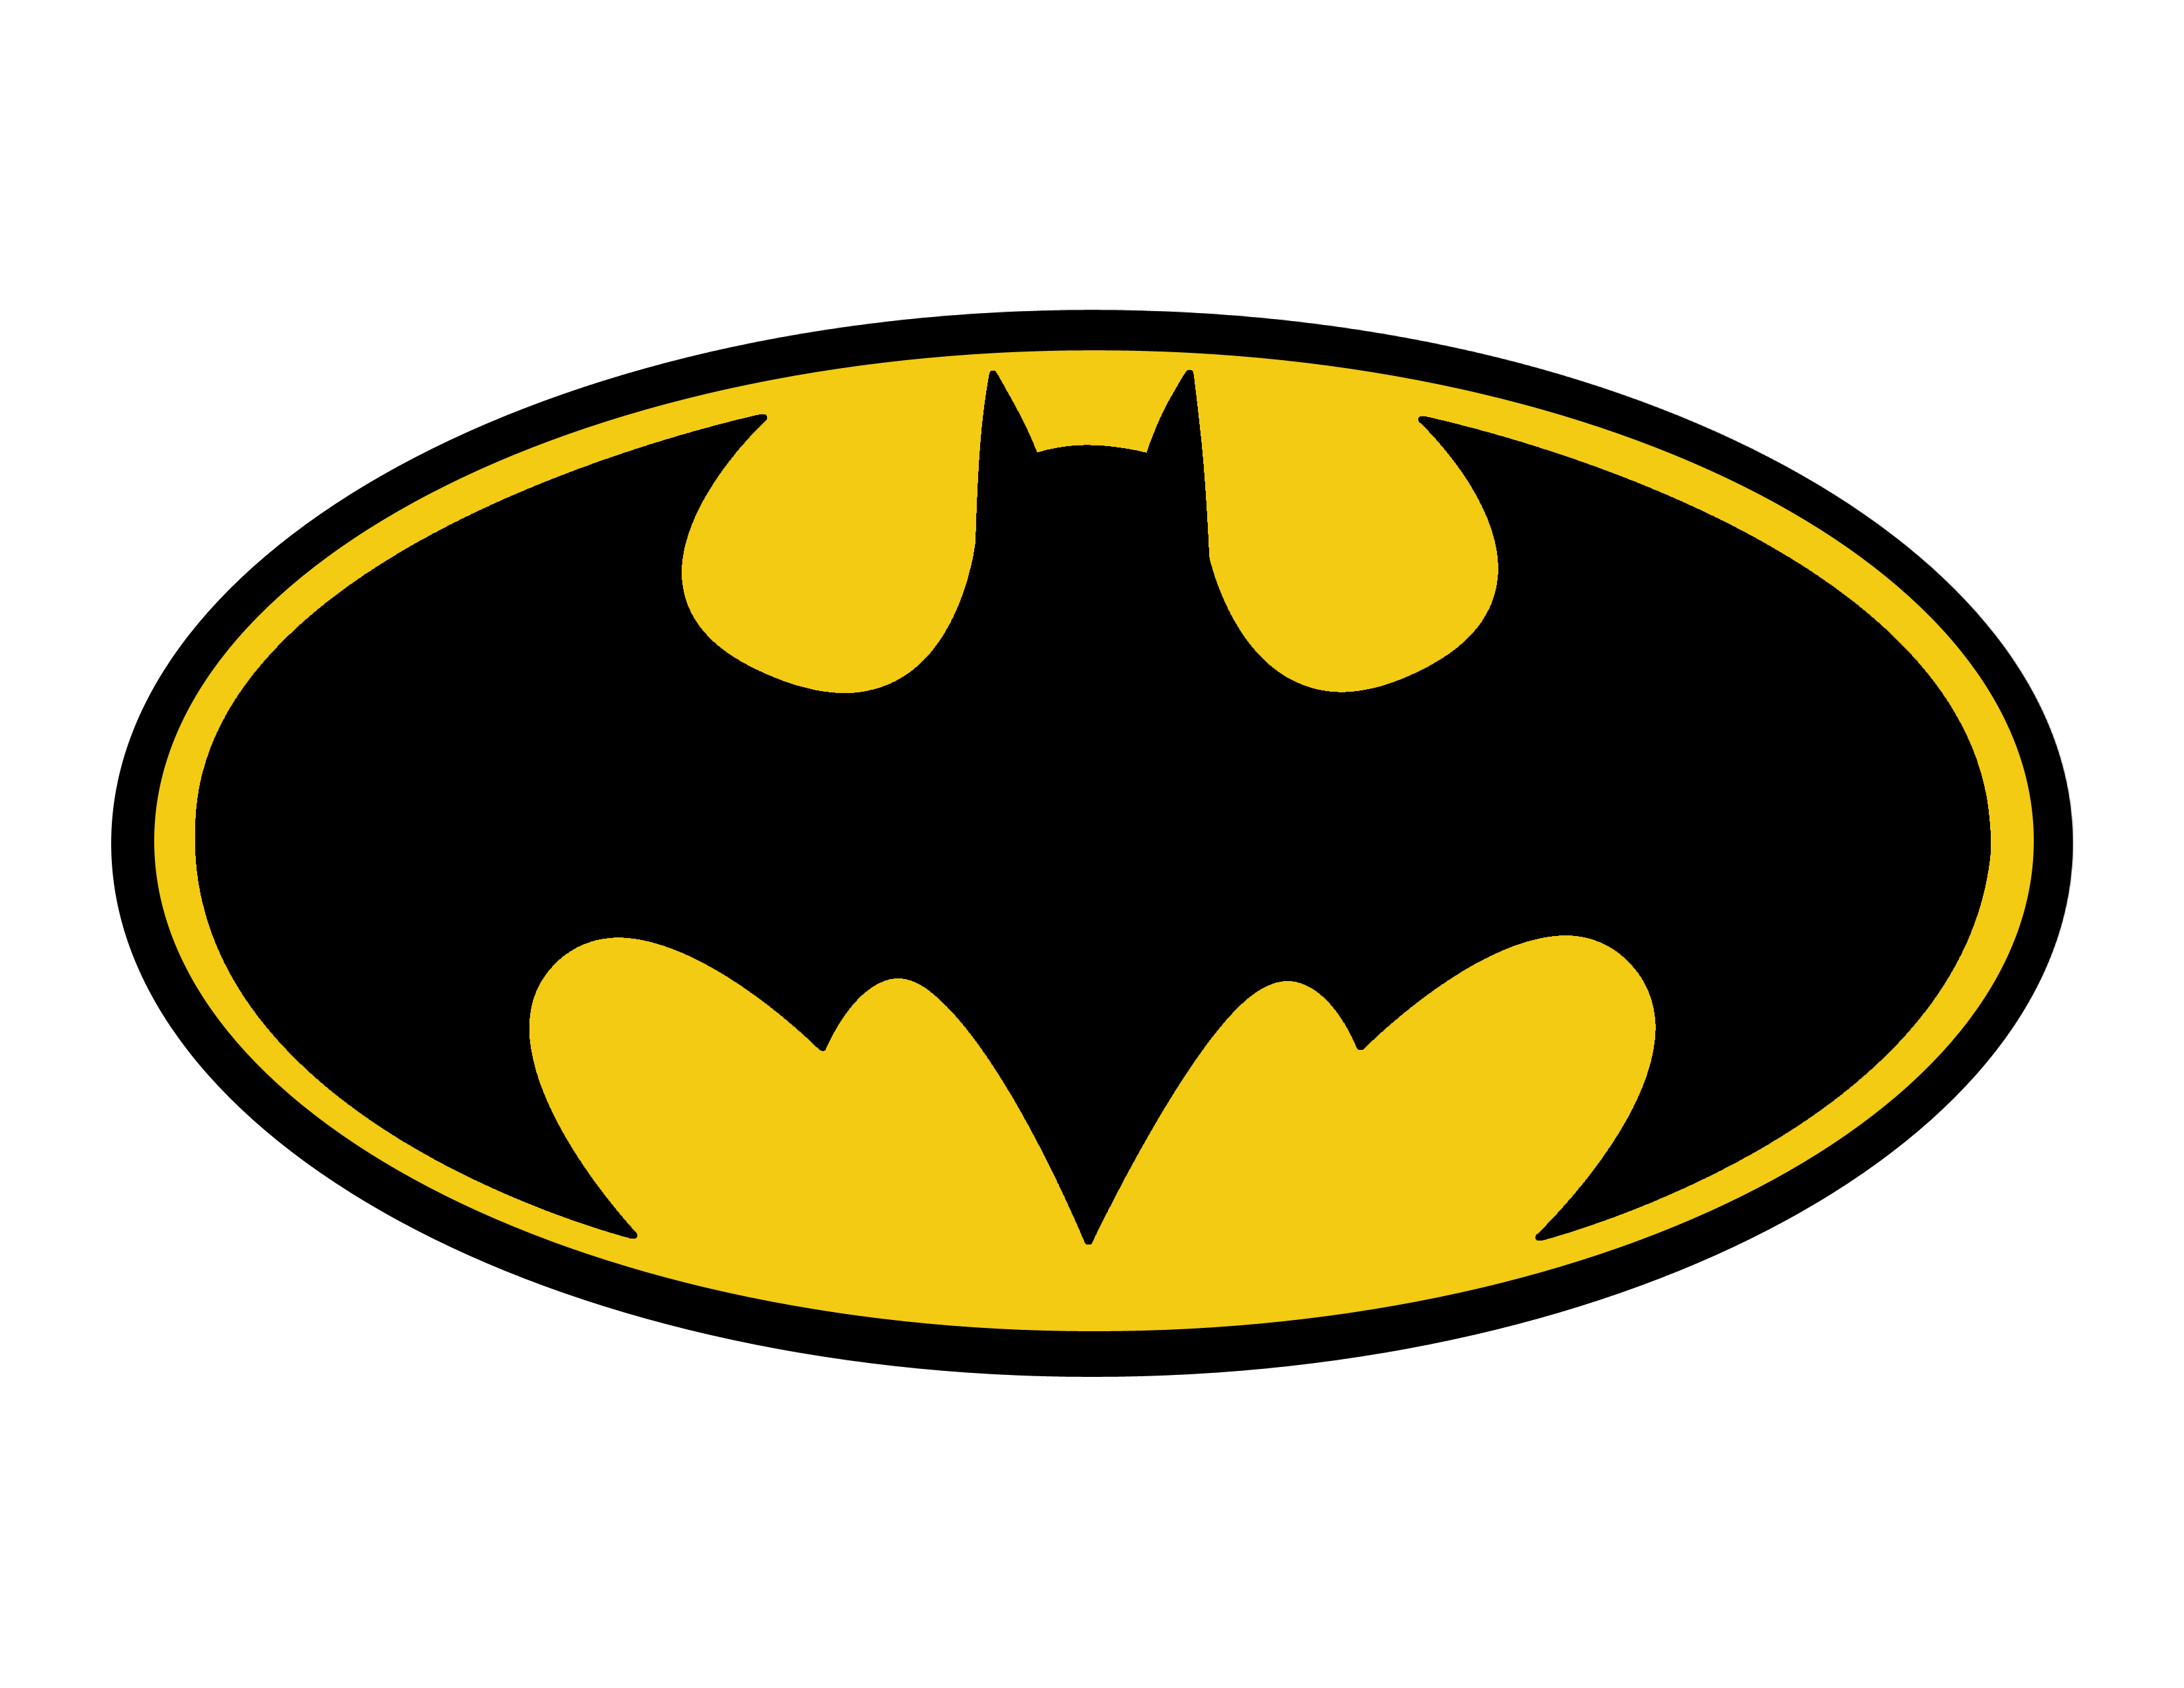 Logo de batman png clipart best Batman symbol